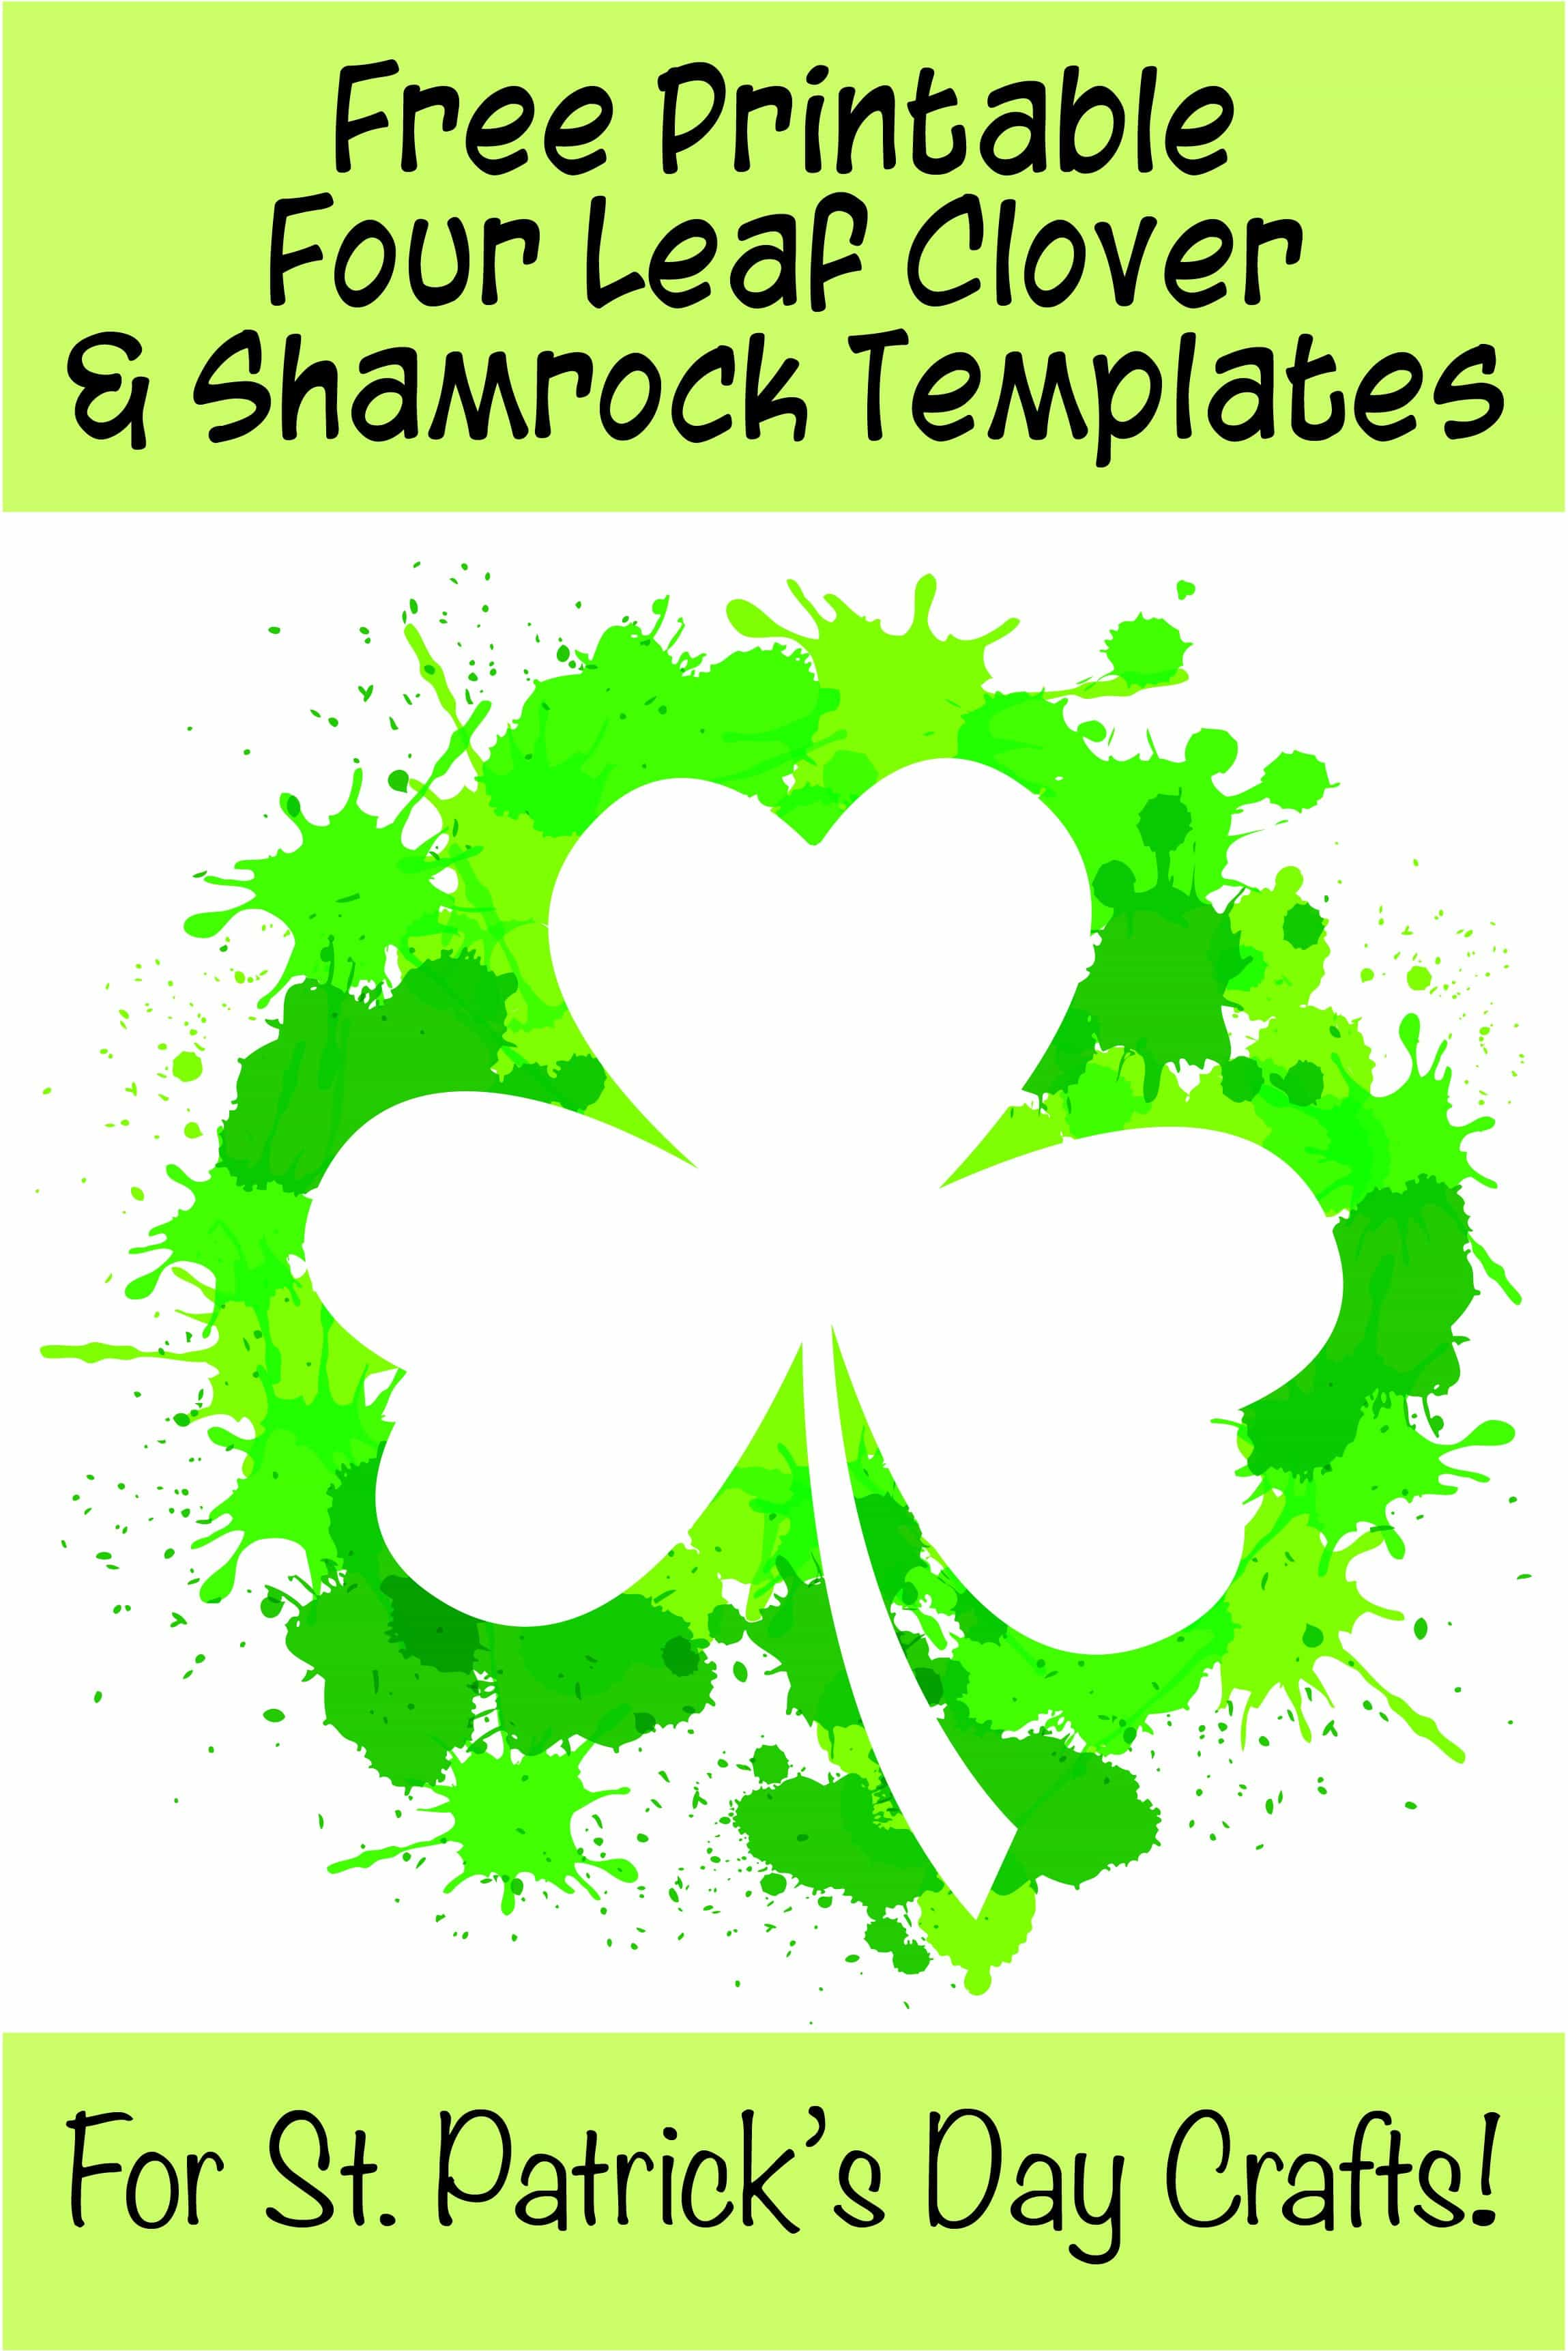 photograph relating to Printable Shamrock Images referred to as 17+ Cost-free Printable 4 Leaf Clover Shamrock Templates